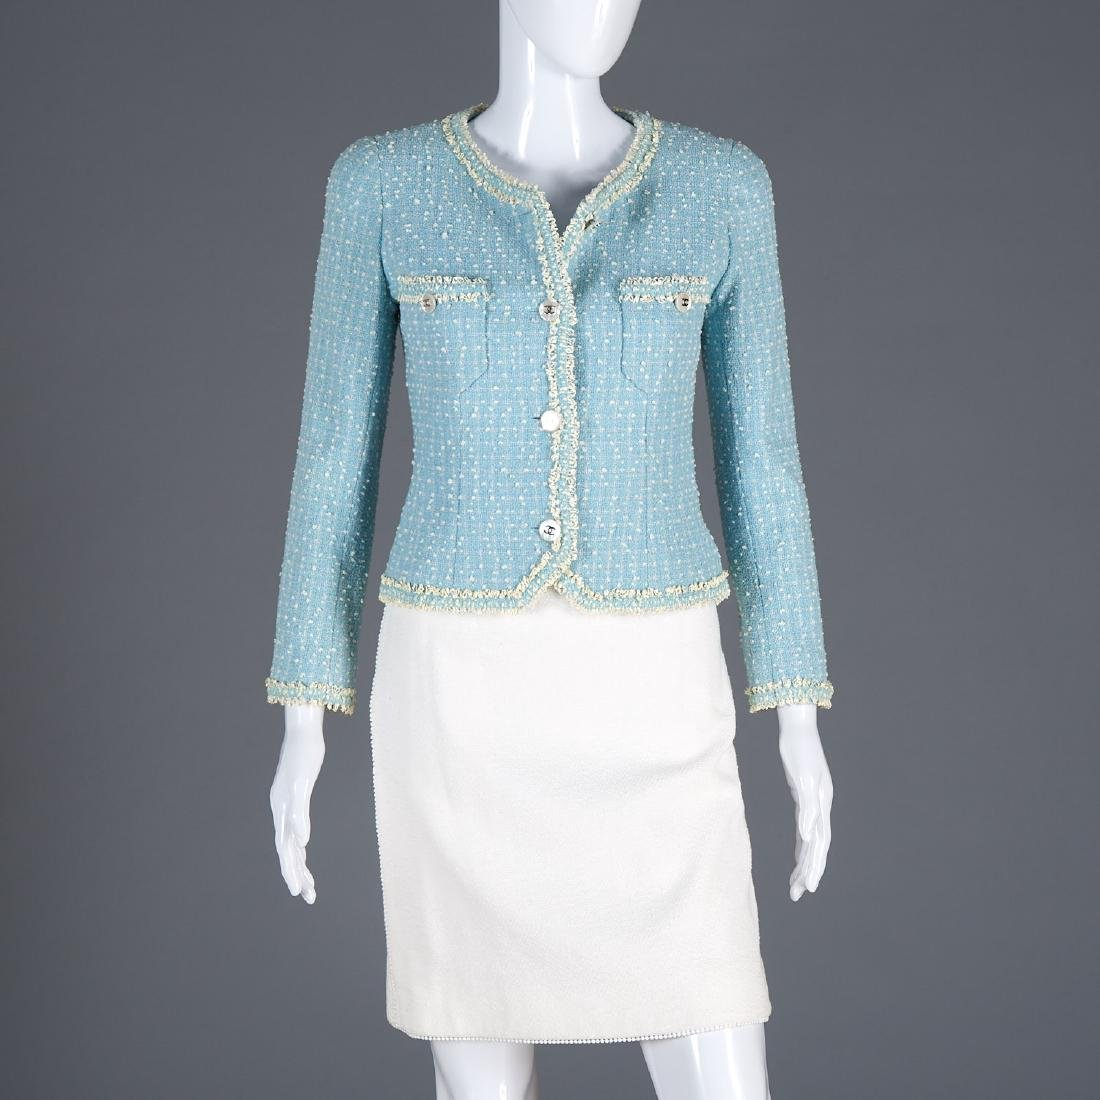 Chanel Boutique wool blend jacket and cotton skirt